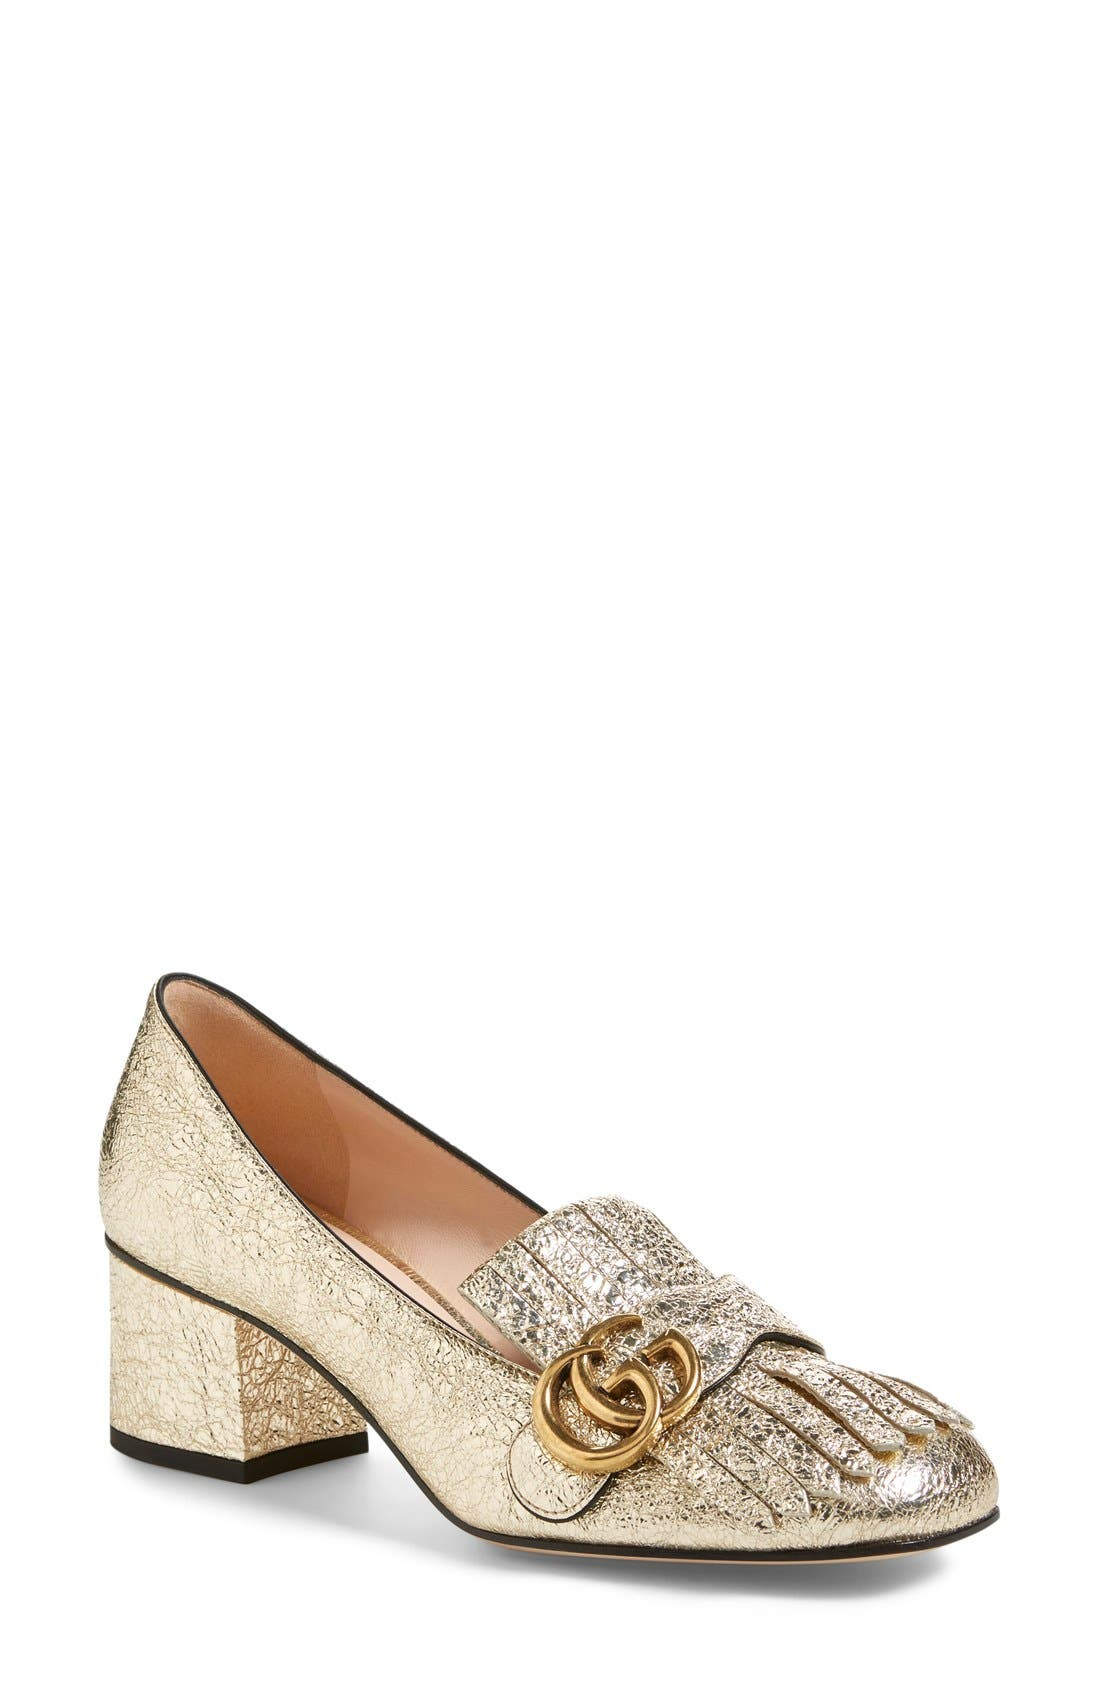 GG Pump,                         Main,                         color, Gold Leather